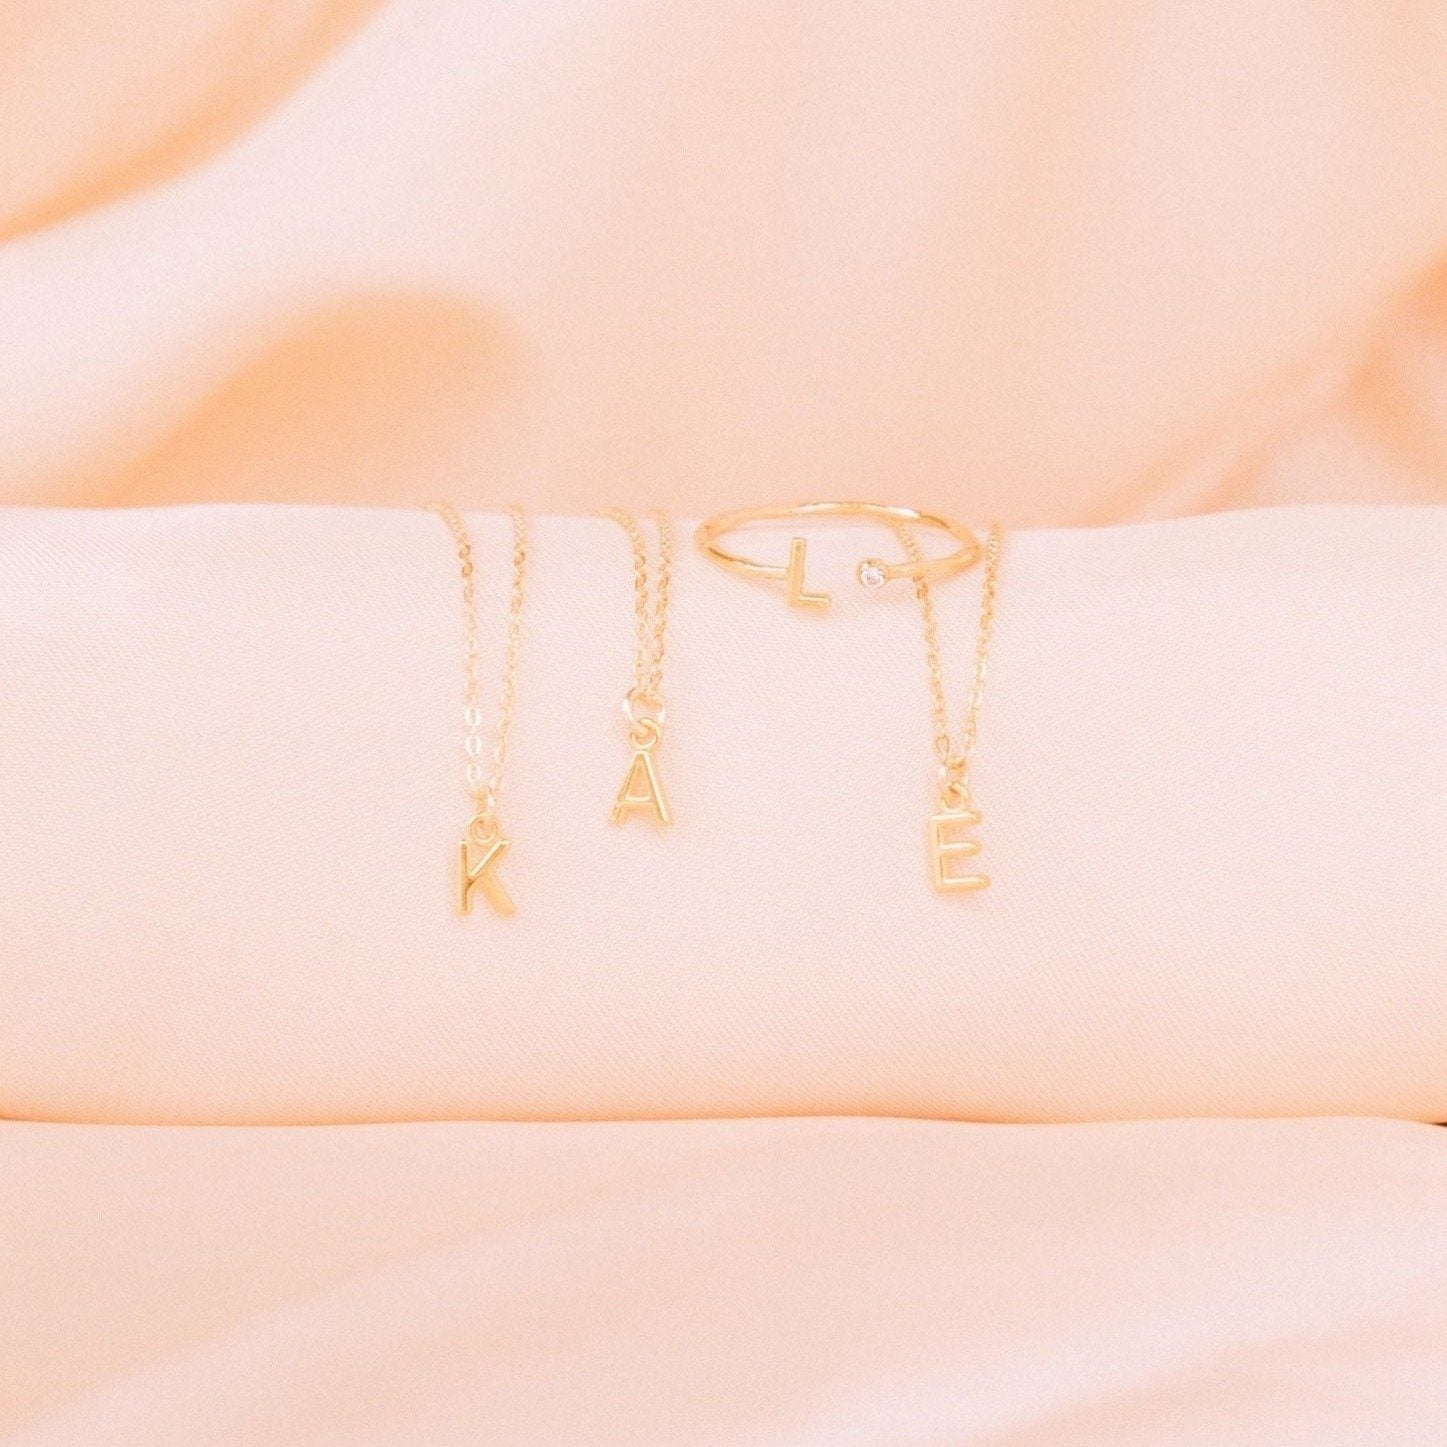 Initial Necklaces on pink satin, Initials K A E, made by Katie Dean Jewelry